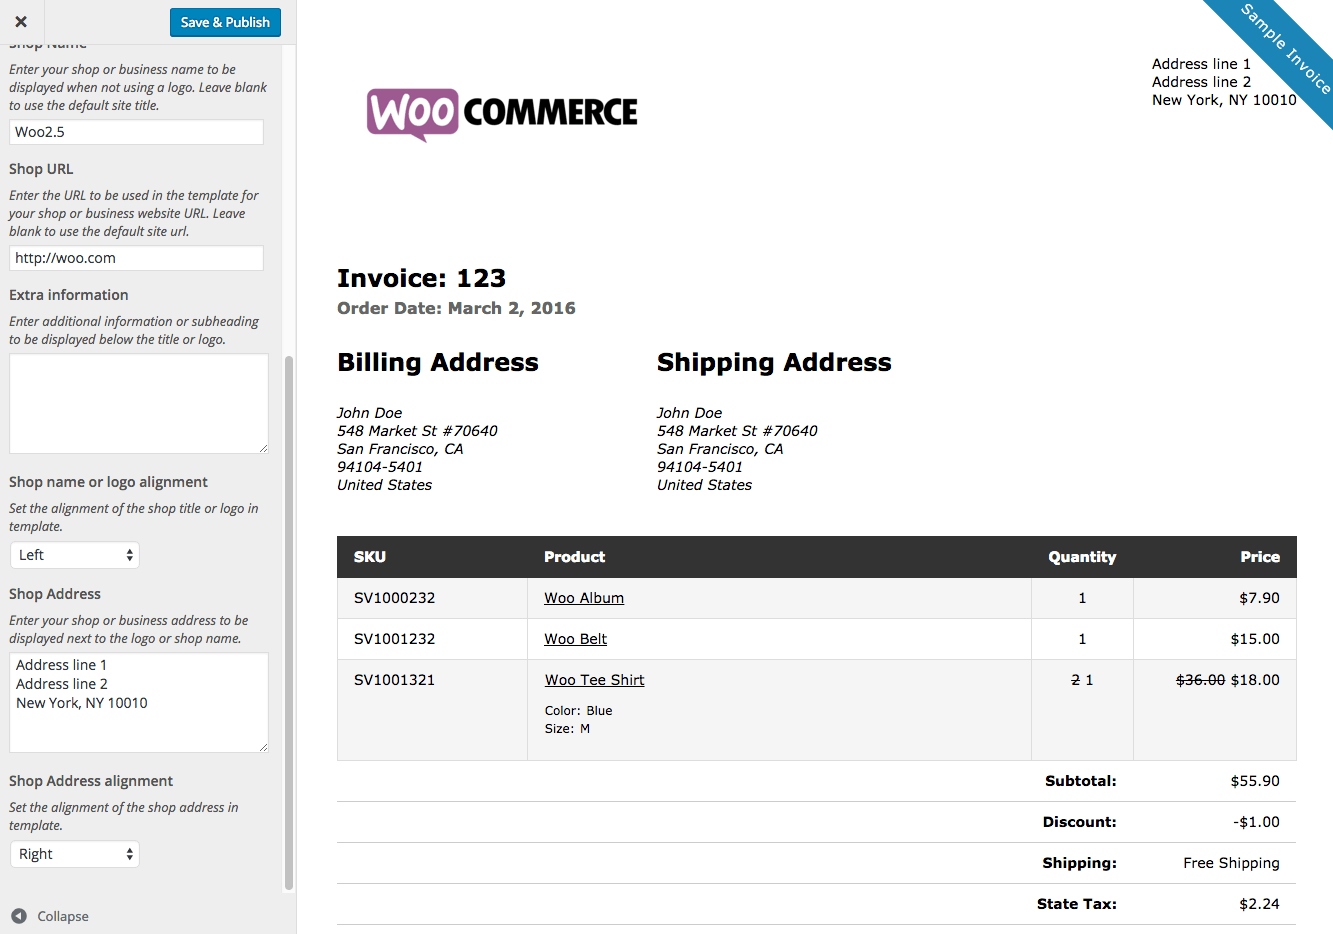 Shopdesignsus  Nice Print Invoices Amp Packing Lists  Woocommerce With Excellent Woocommerce Print Invoices  Packing Lists Customizer With Amazing Sample Sales Invoice Also Sample Rent Invoice In Addition Catering Invoice Template Excel And Ups Commercial Invoice Pdf As Well As Pages Invoice Templates Free Additionally Microsoft Works Invoice Template From Woocommercecom With Shopdesignsus  Excellent Print Invoices Amp Packing Lists  Woocommerce With Amazing Woocommerce Print Invoices  Packing Lists Customizer And Nice Sample Sales Invoice Also Sample Rent Invoice In Addition Catering Invoice Template Excel From Woocommercecom